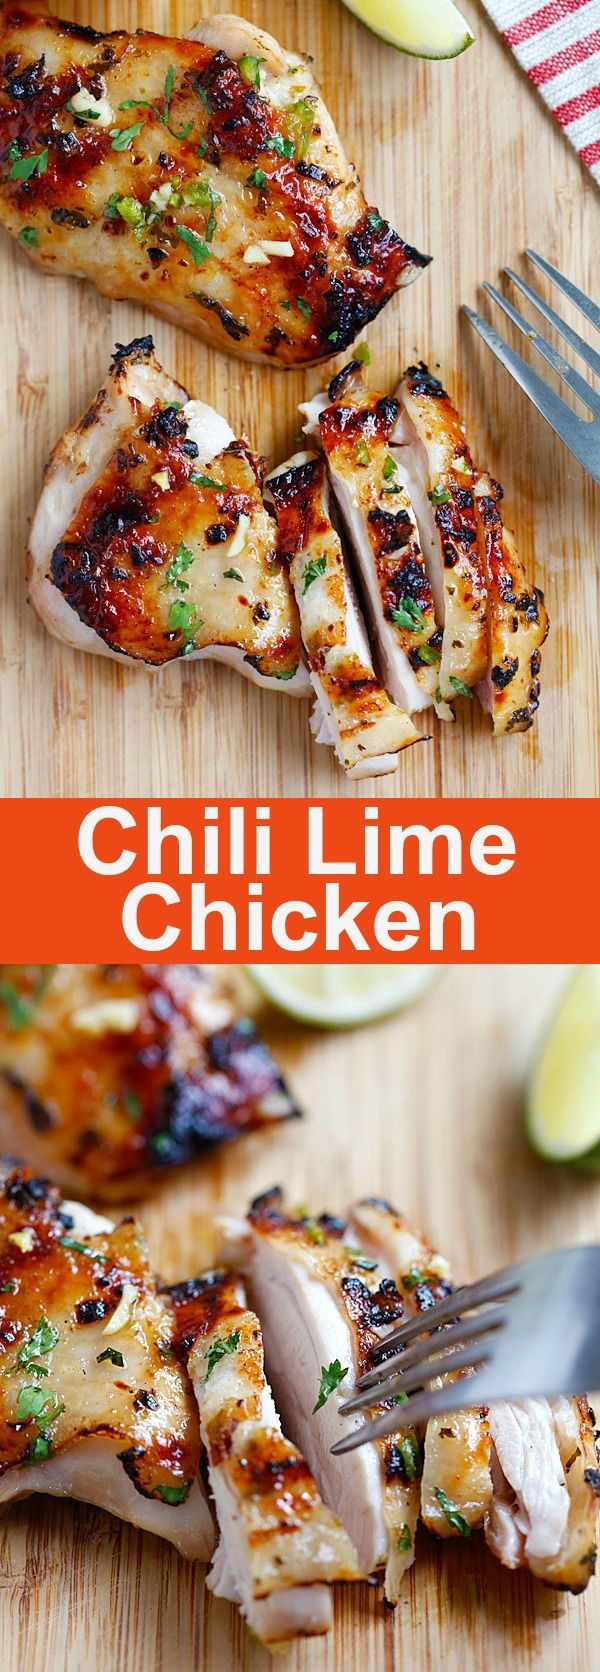 Chili lime chicken – moist and delicious chicken marinated with chili and lime and grill to perfection. SO GOOD   rasamalaysia.com